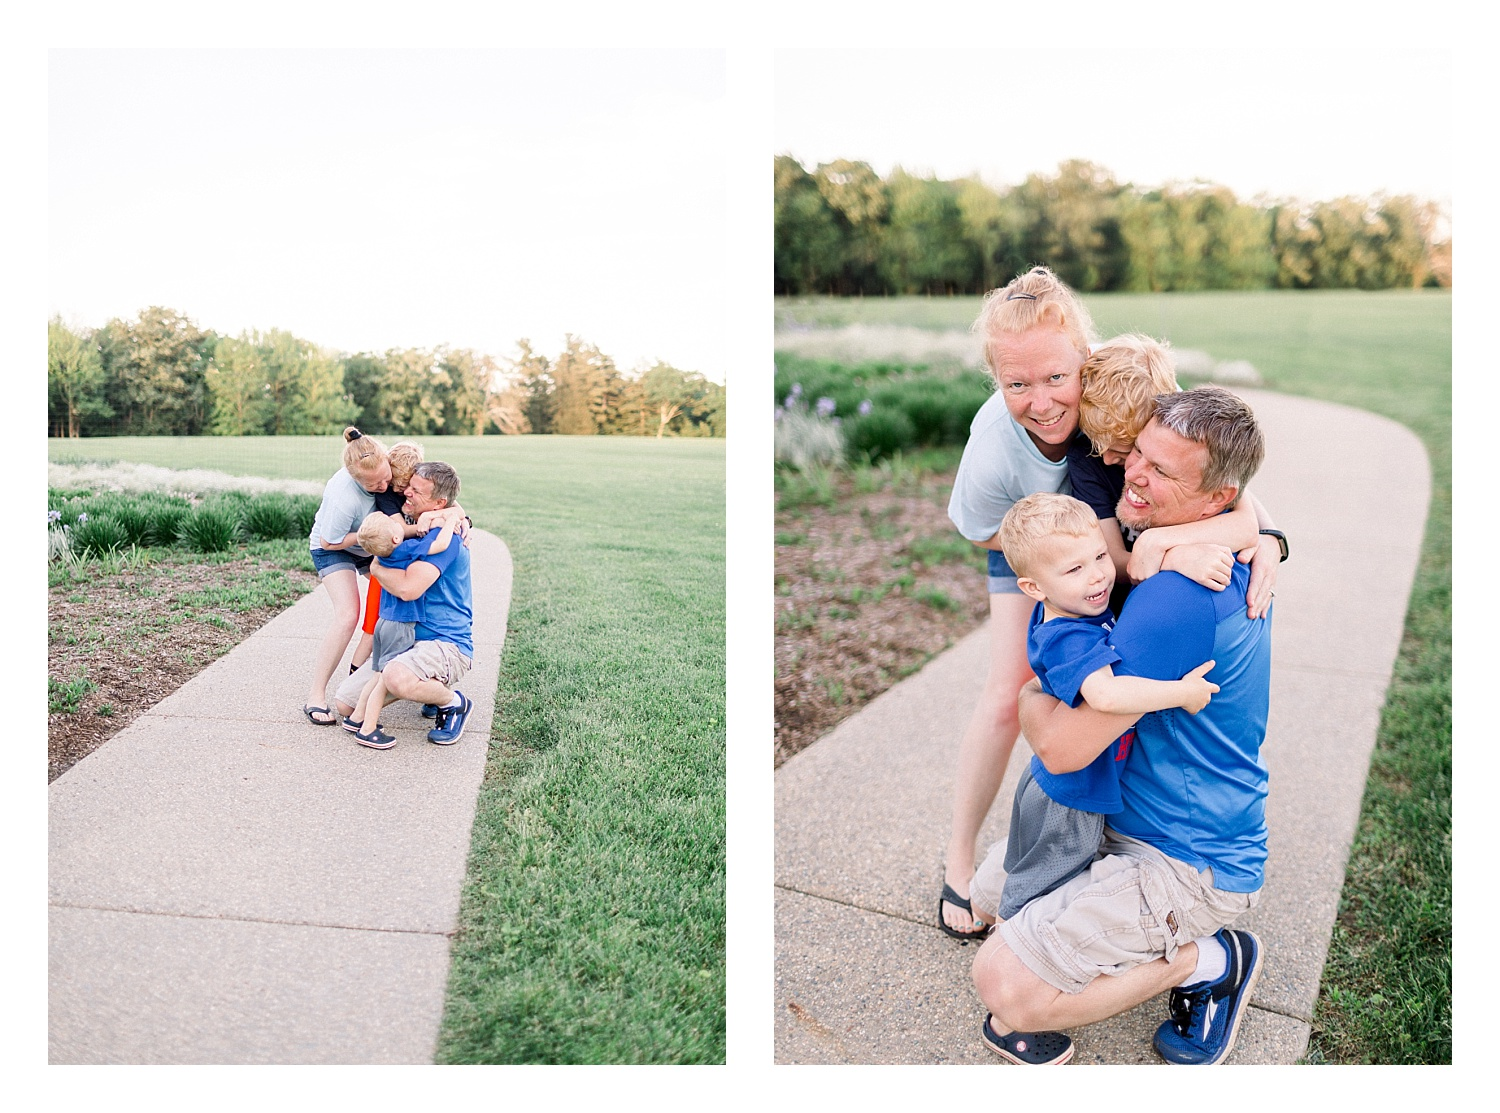 Wisconsin-Family-Photographers-Elle-x-Troy-Photography-The-Bopp-Family-Robert-Allerton-Park-Monticello-Illinois_0019.jpg